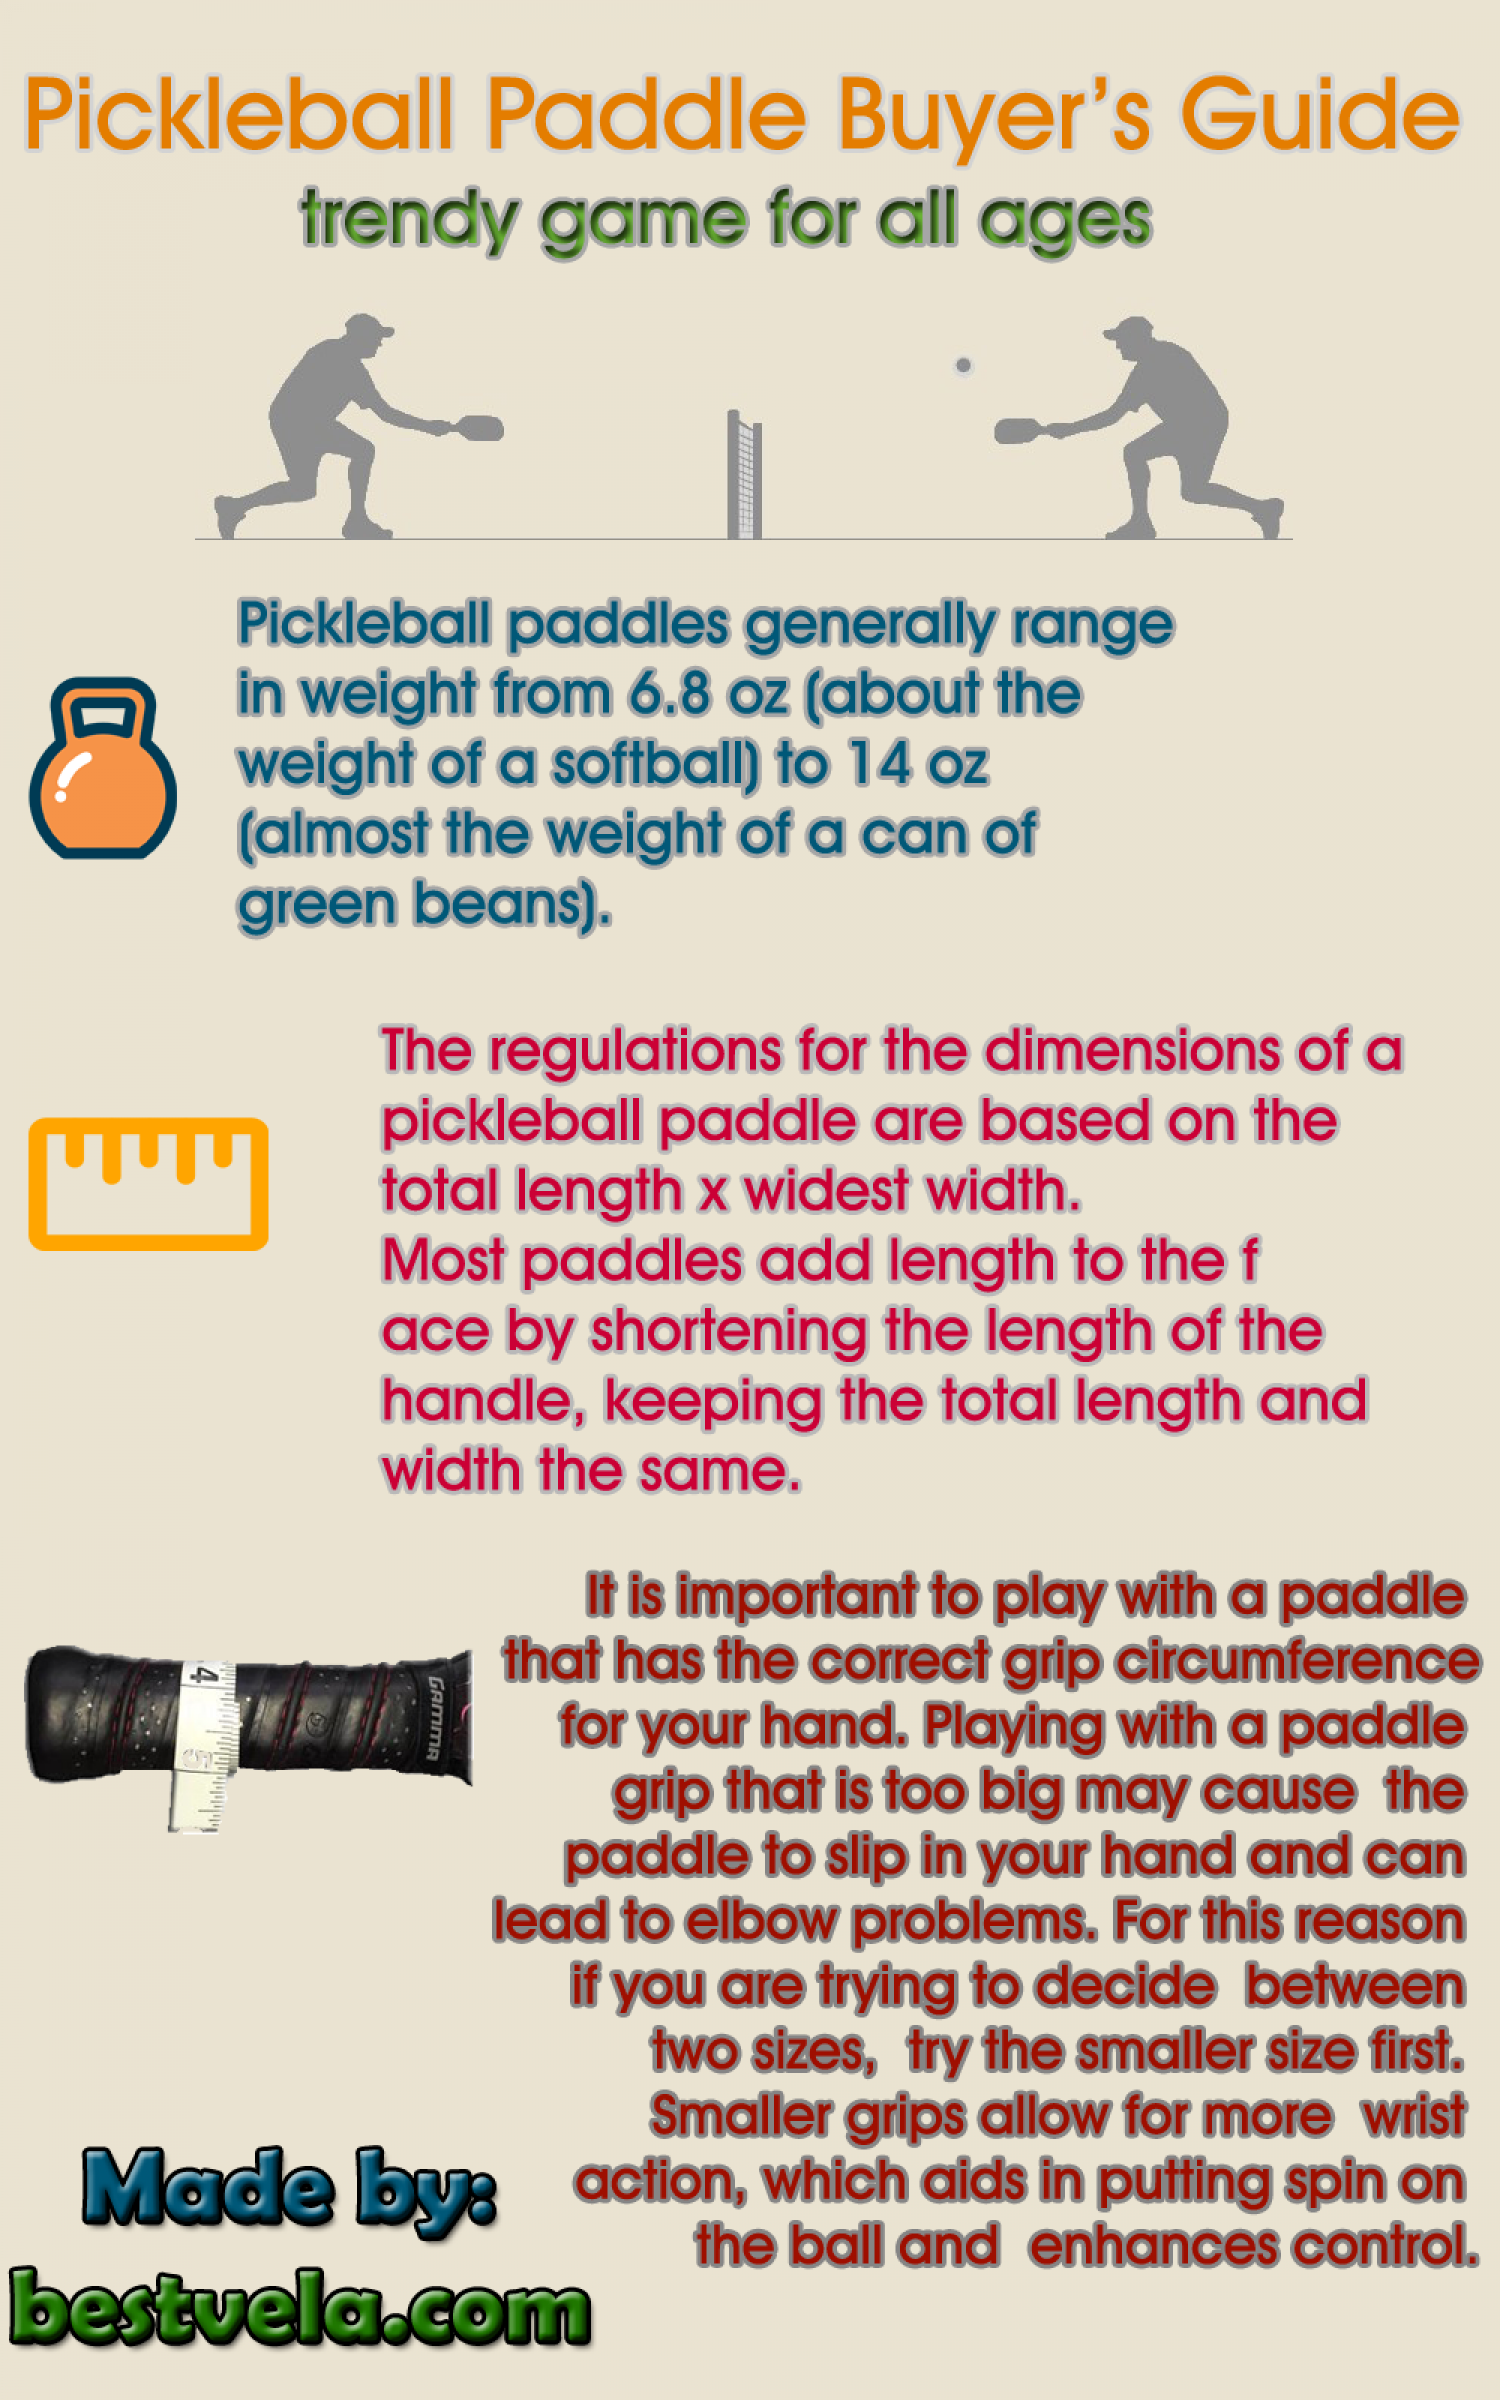 Best Pickleball Paddle Buyer's Guide Infographic